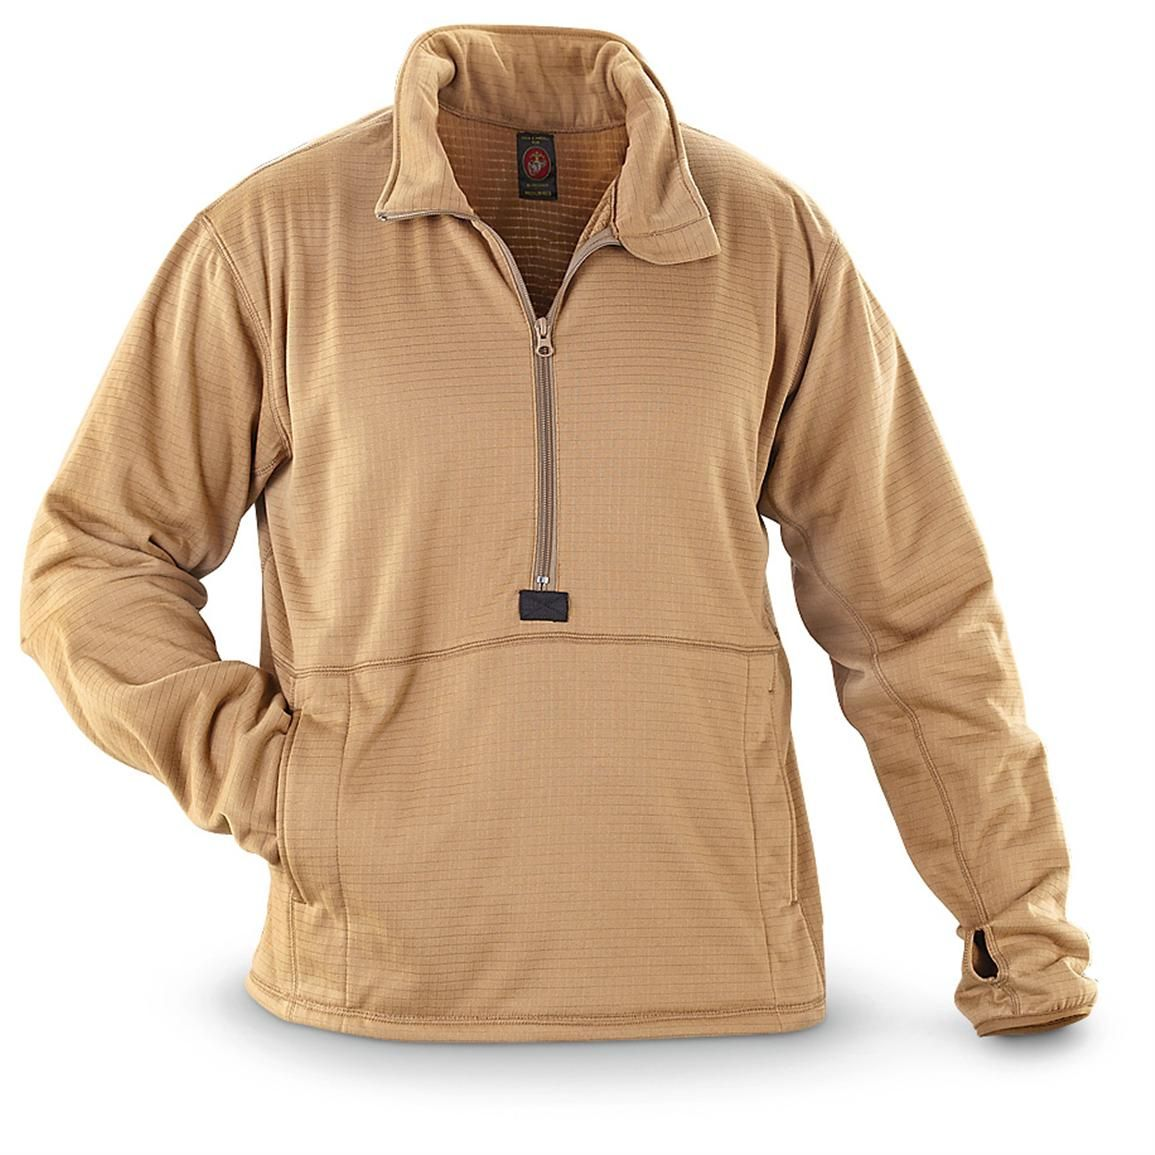 New U.S. Military Surplus Grid Fleece Pullover, Coyote $29 ...